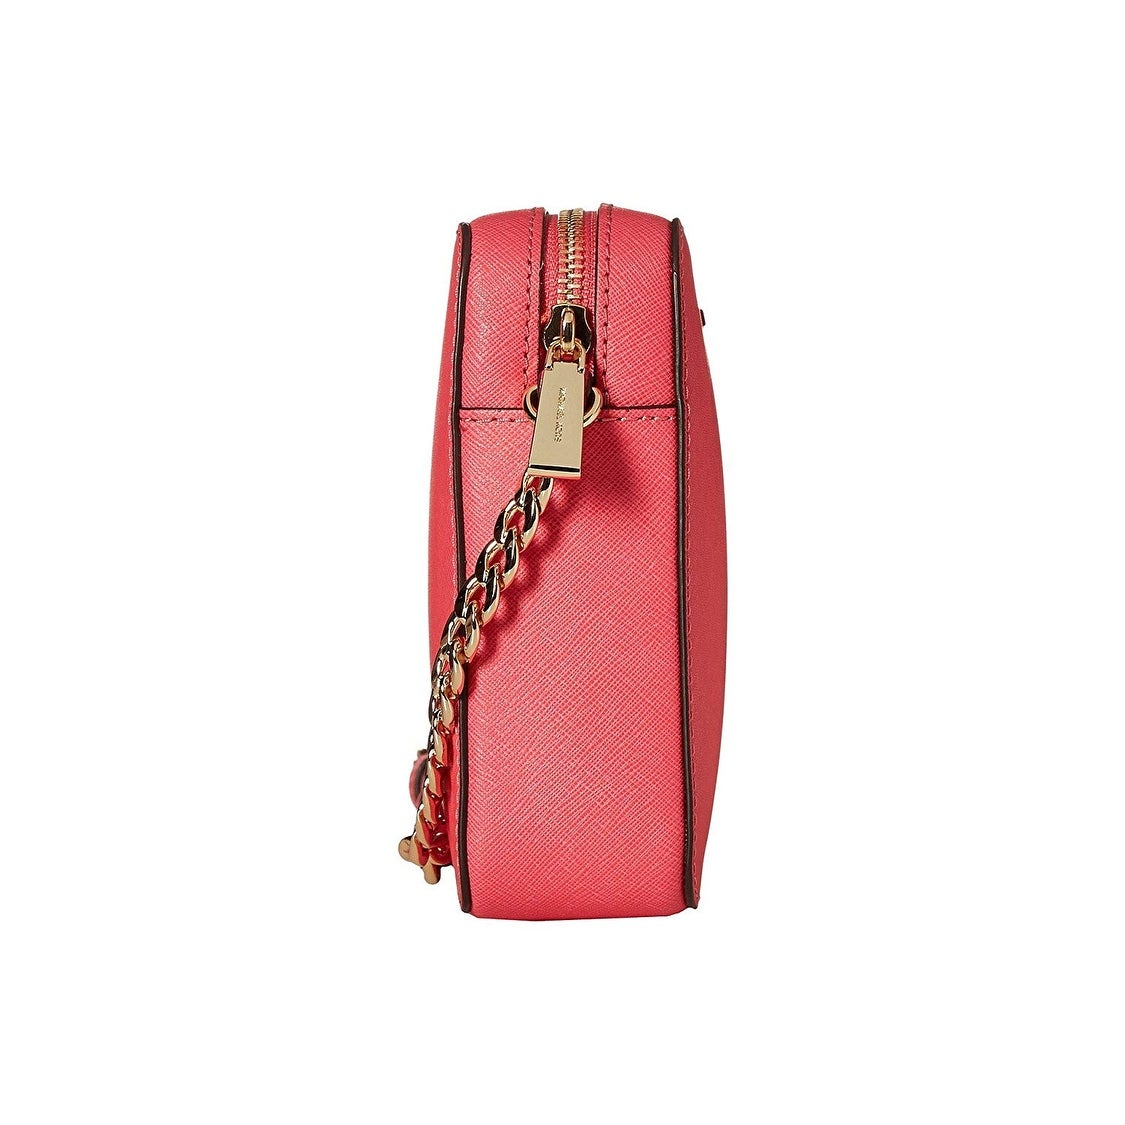 722a92d7f8d120 Shop MICHAEL Michael Kors Jet Set East West Crossgrain Leather Crossbody Bag  Rose Pink - Free Shipping Today - Overstock - 28040646